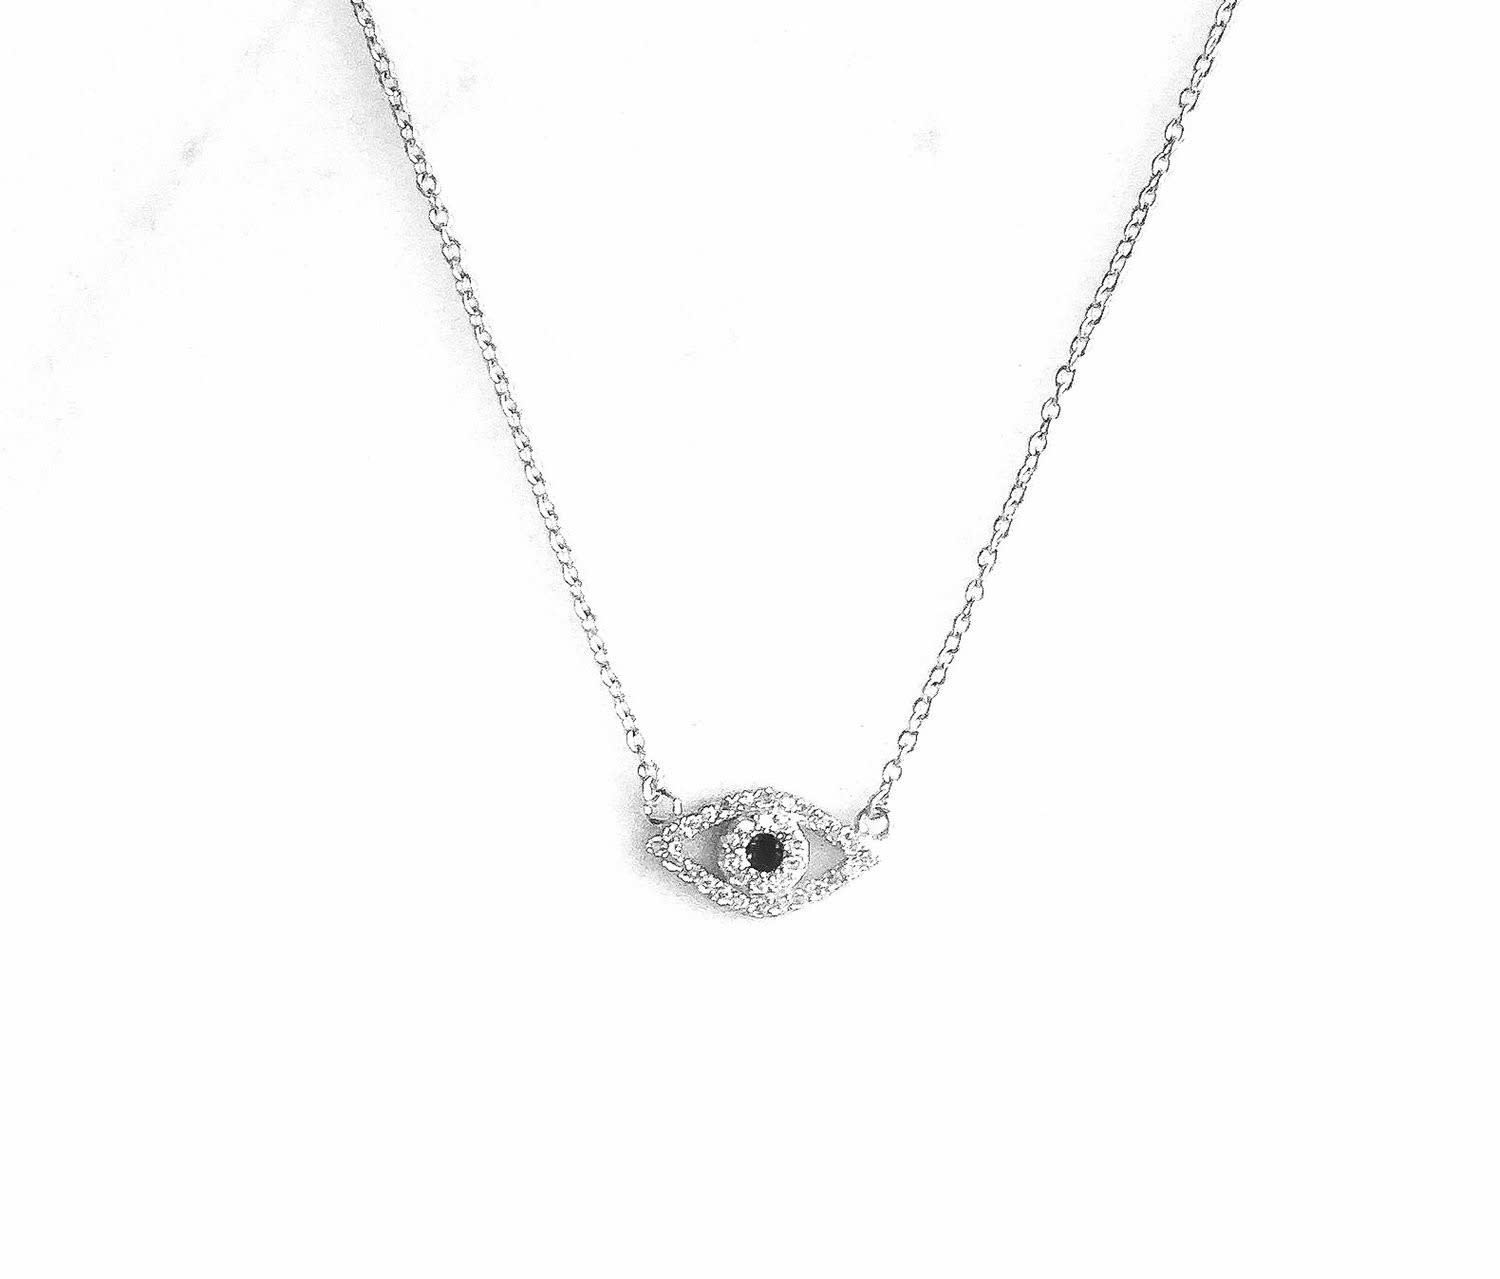 Sterling Silver Cubic Zorconia Evil Eye With Dark Center